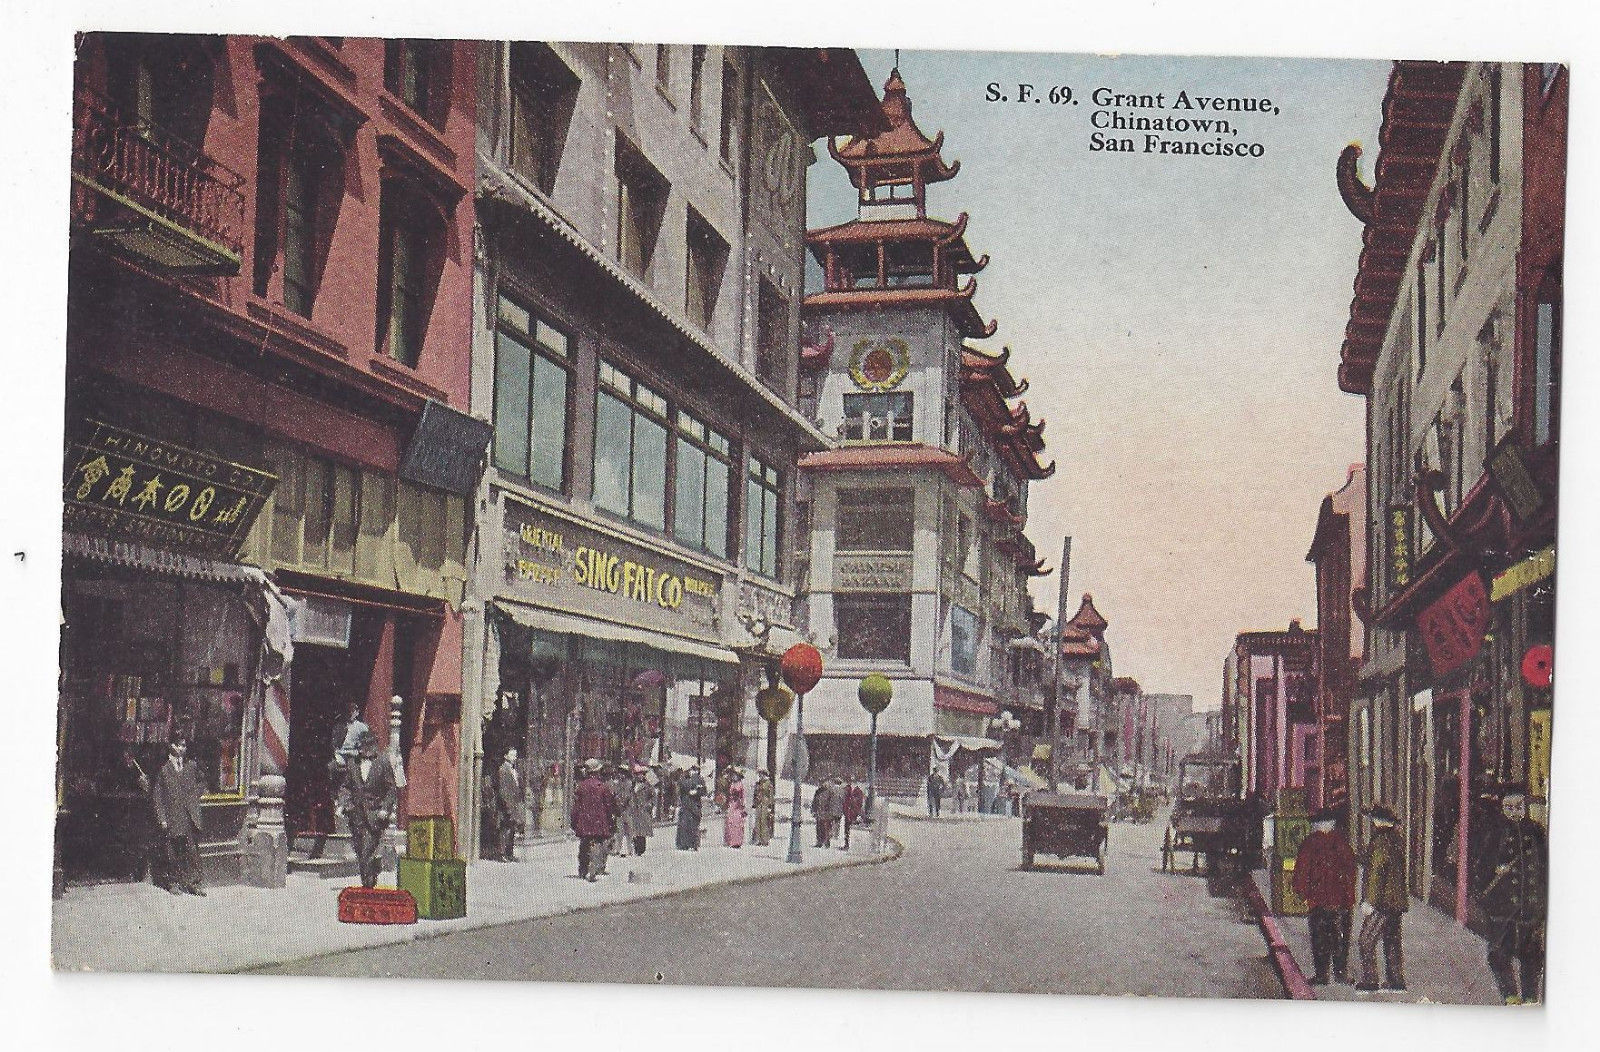 San Francisco CA Grant Ave Chinatown Vintage PNC California Postcard